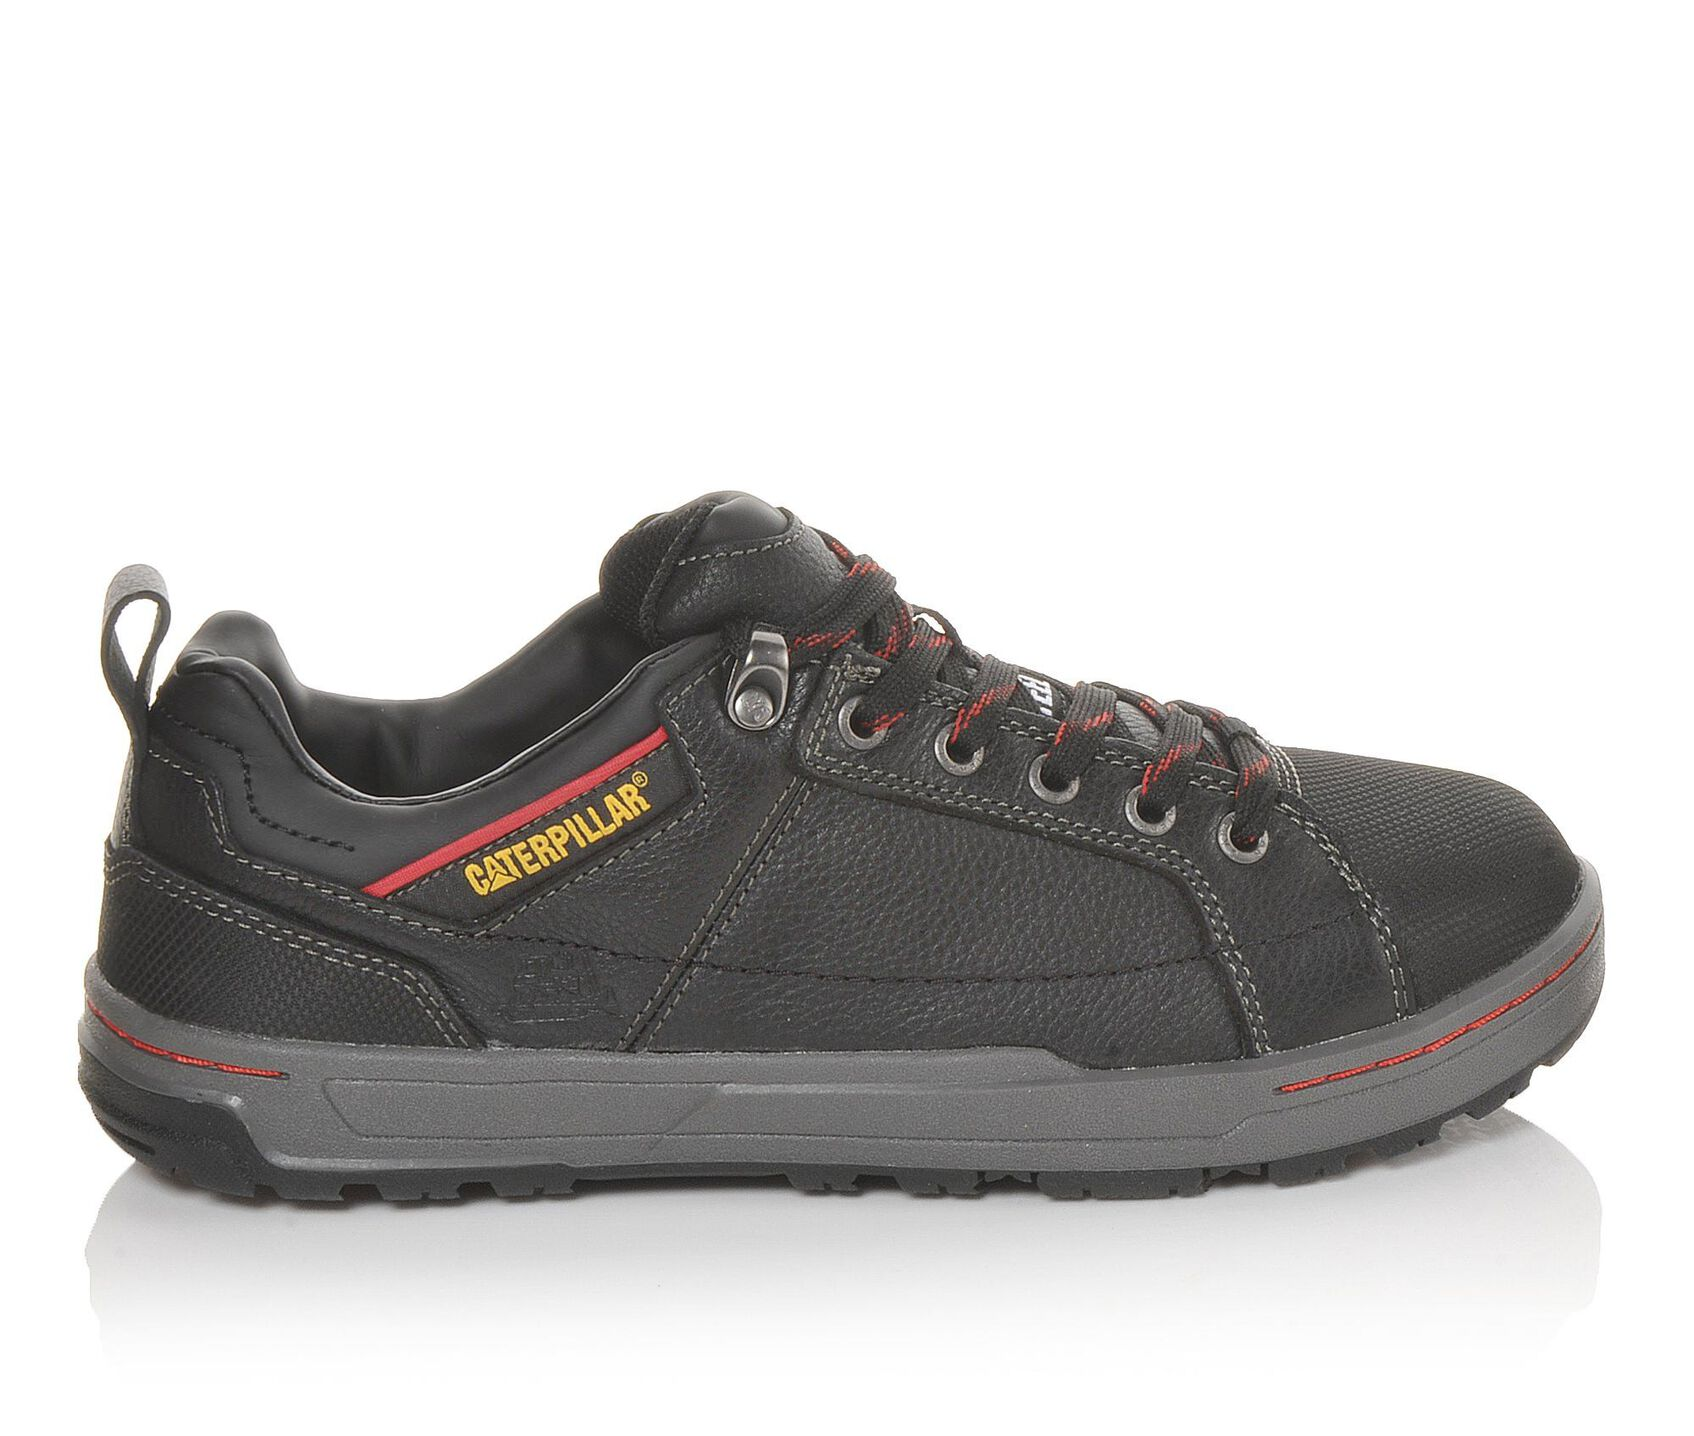 012a131a543 Men's Caterpillar Brode Steel Toe Oxford Work Shoes